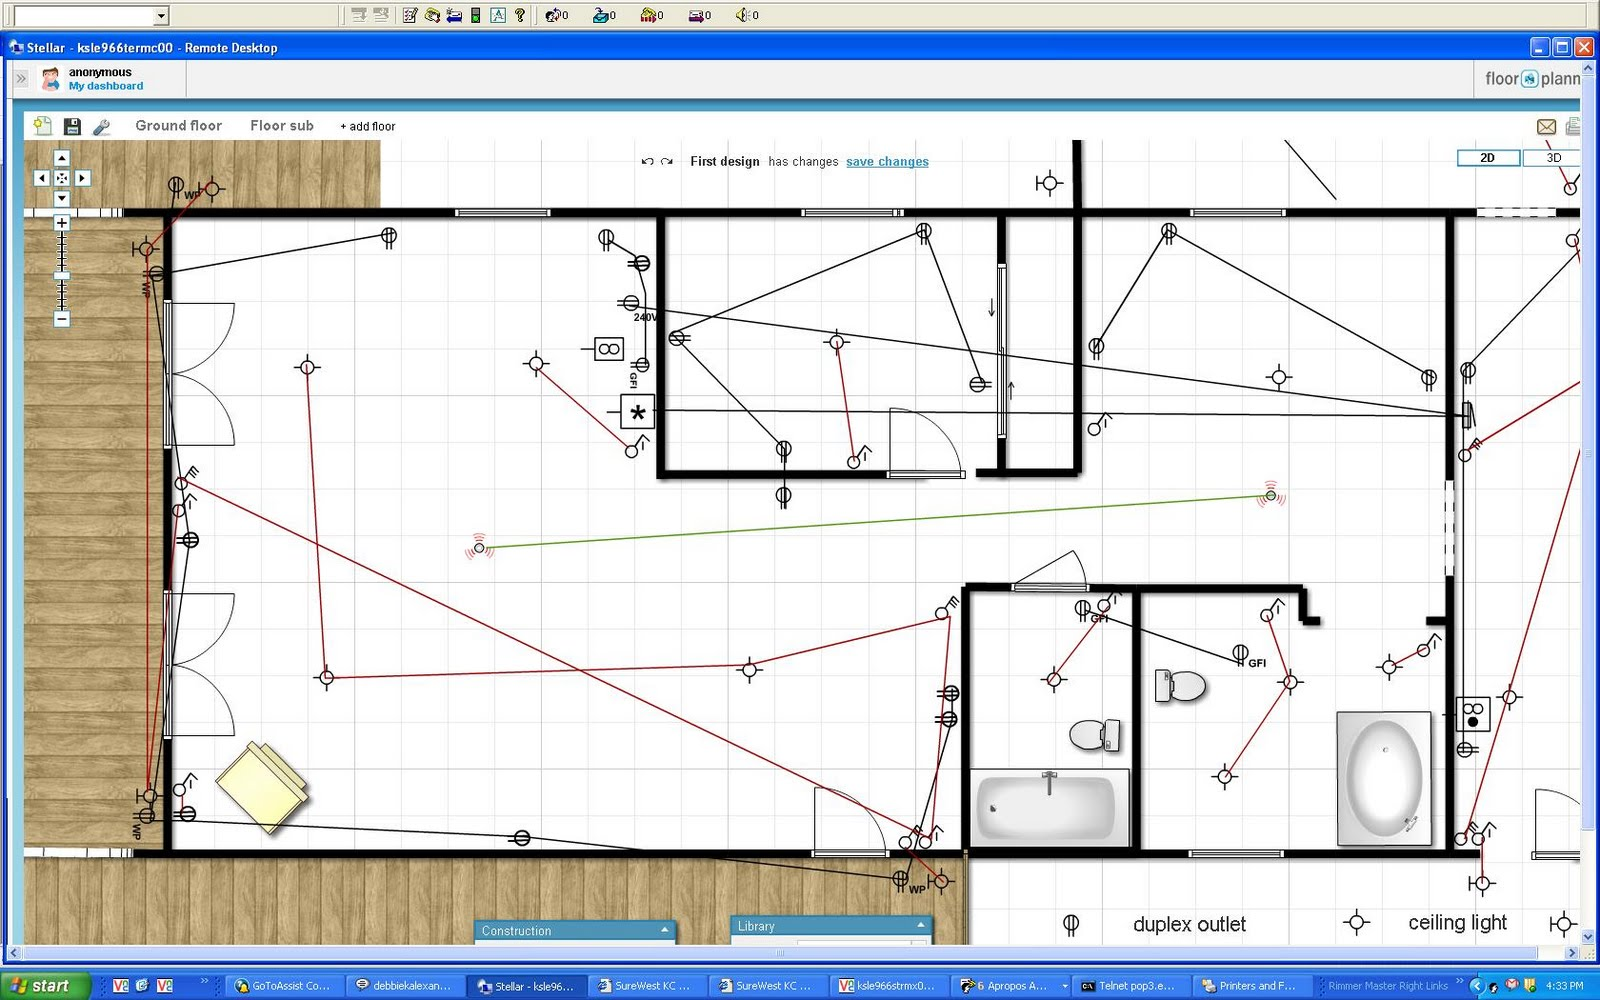 House renovation project plan - Electrical Layout Plan Drafts Lake House Renovation Project Electrical Layout Plan Drafts